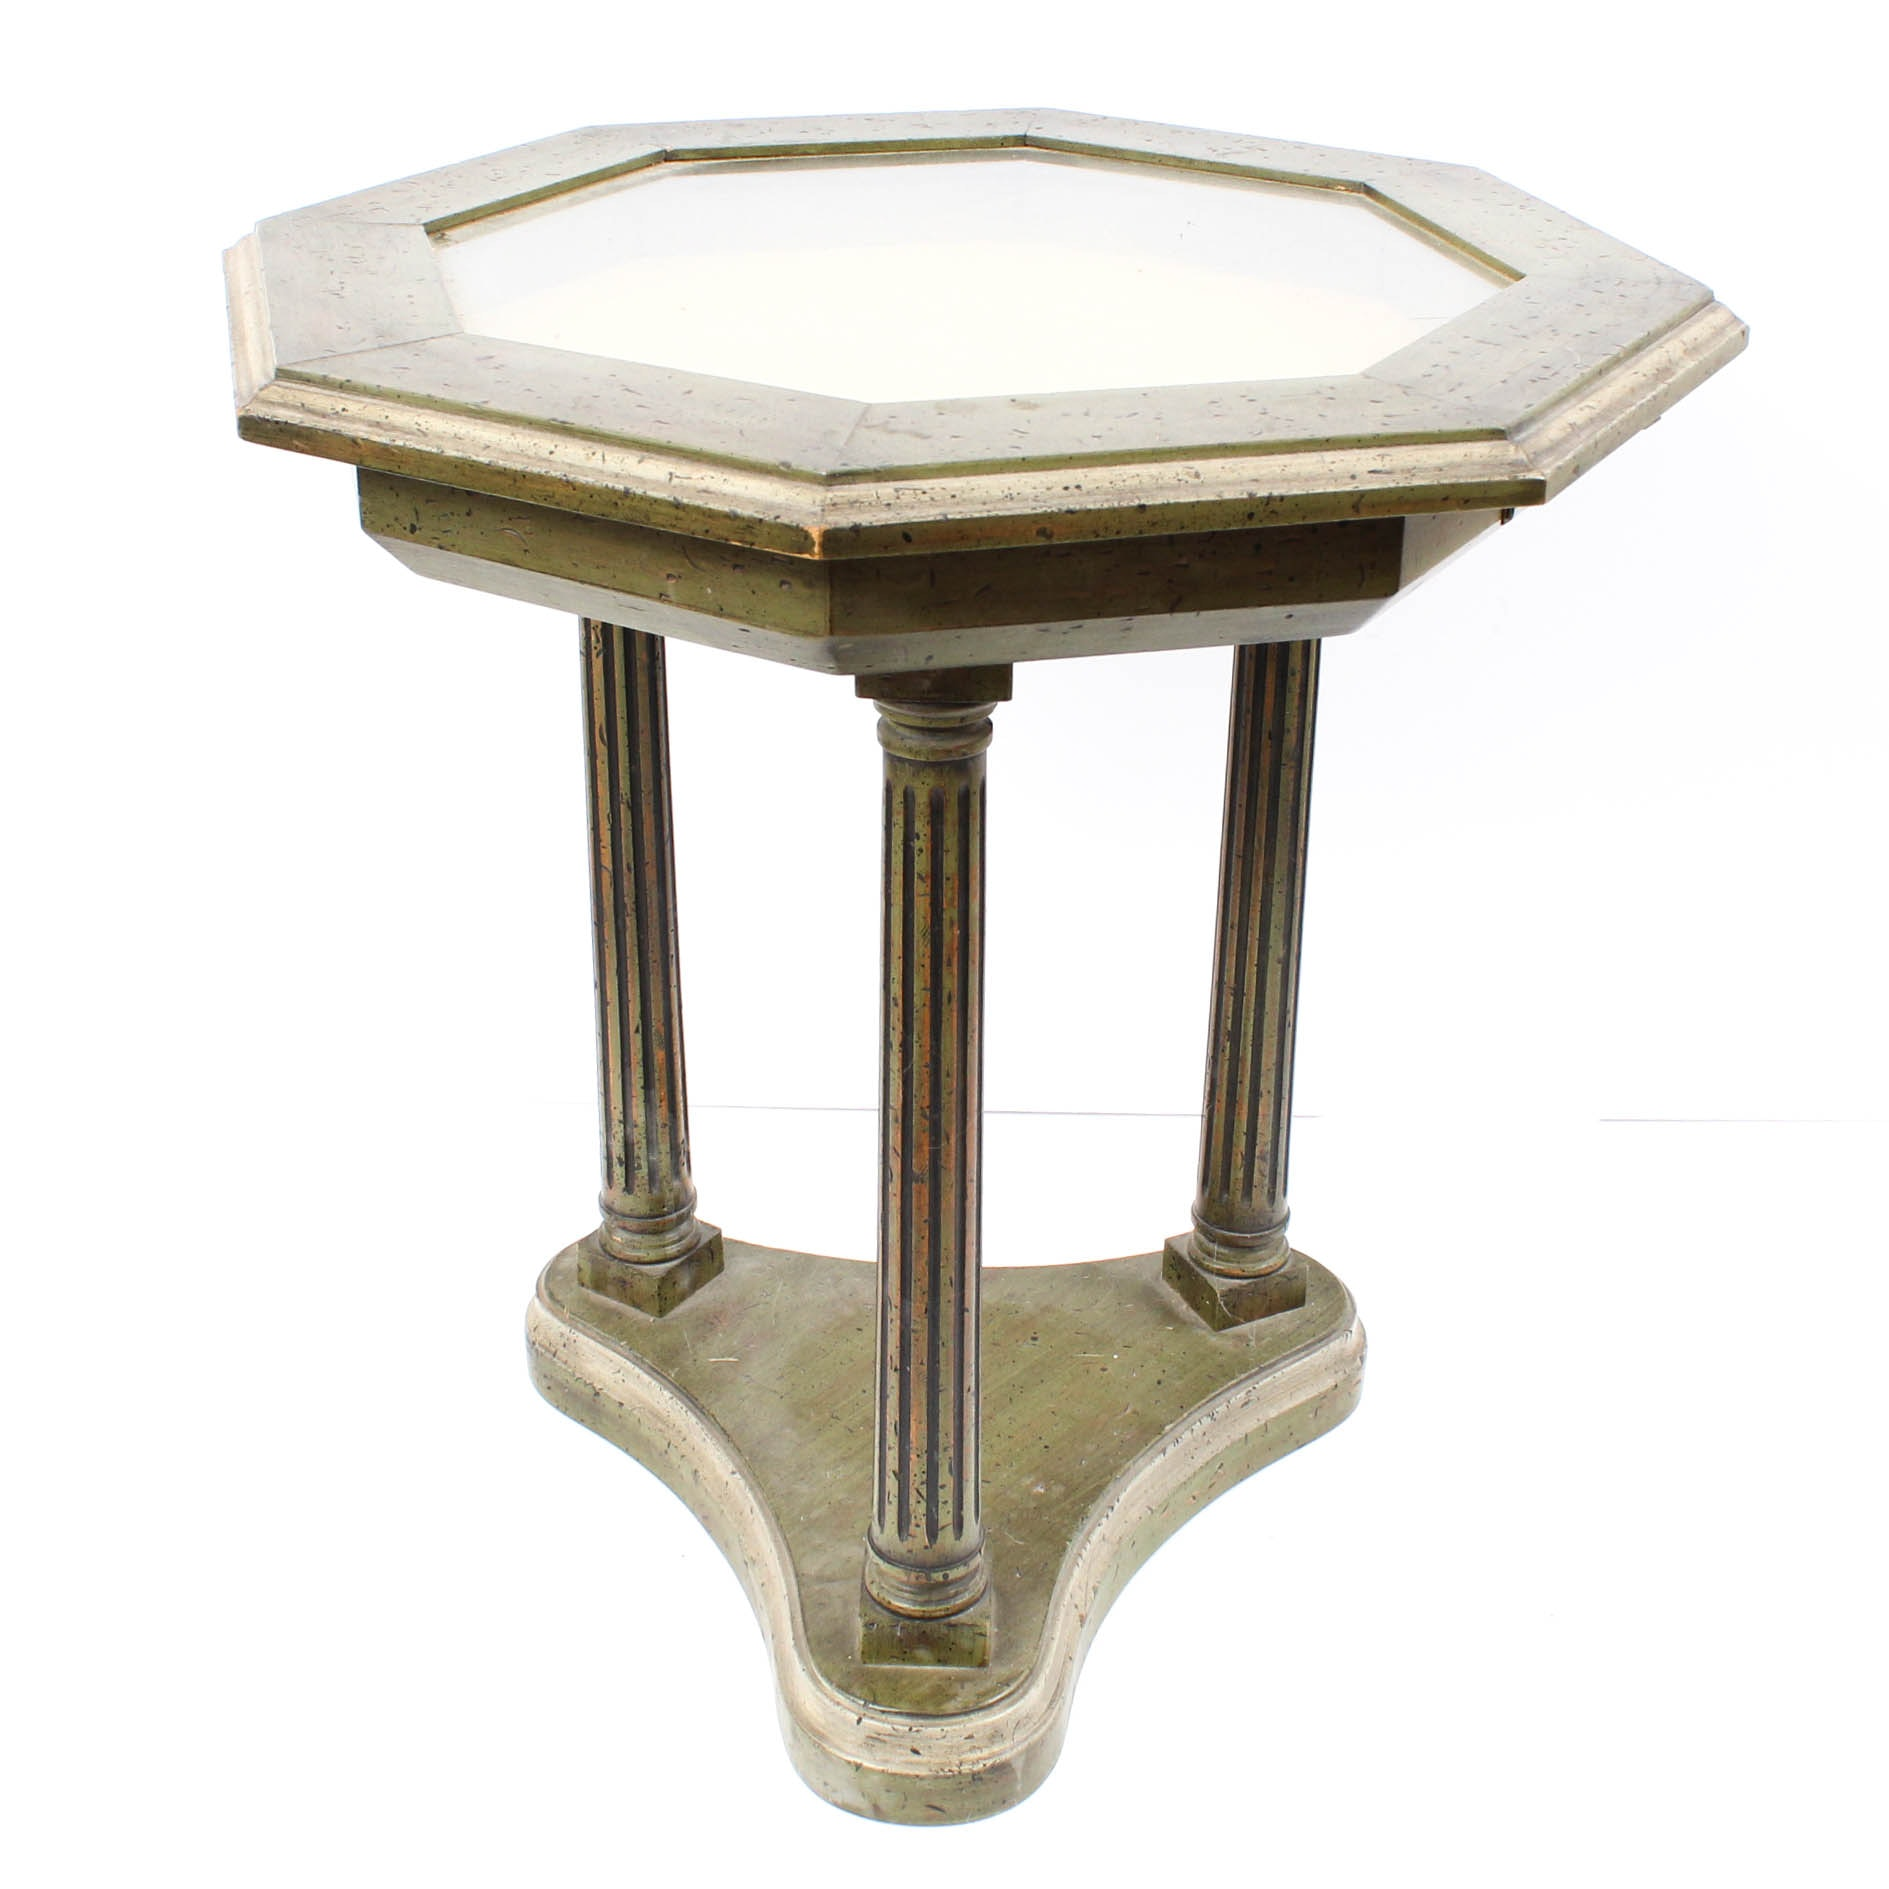 Octagonal Neoclassical Display Table